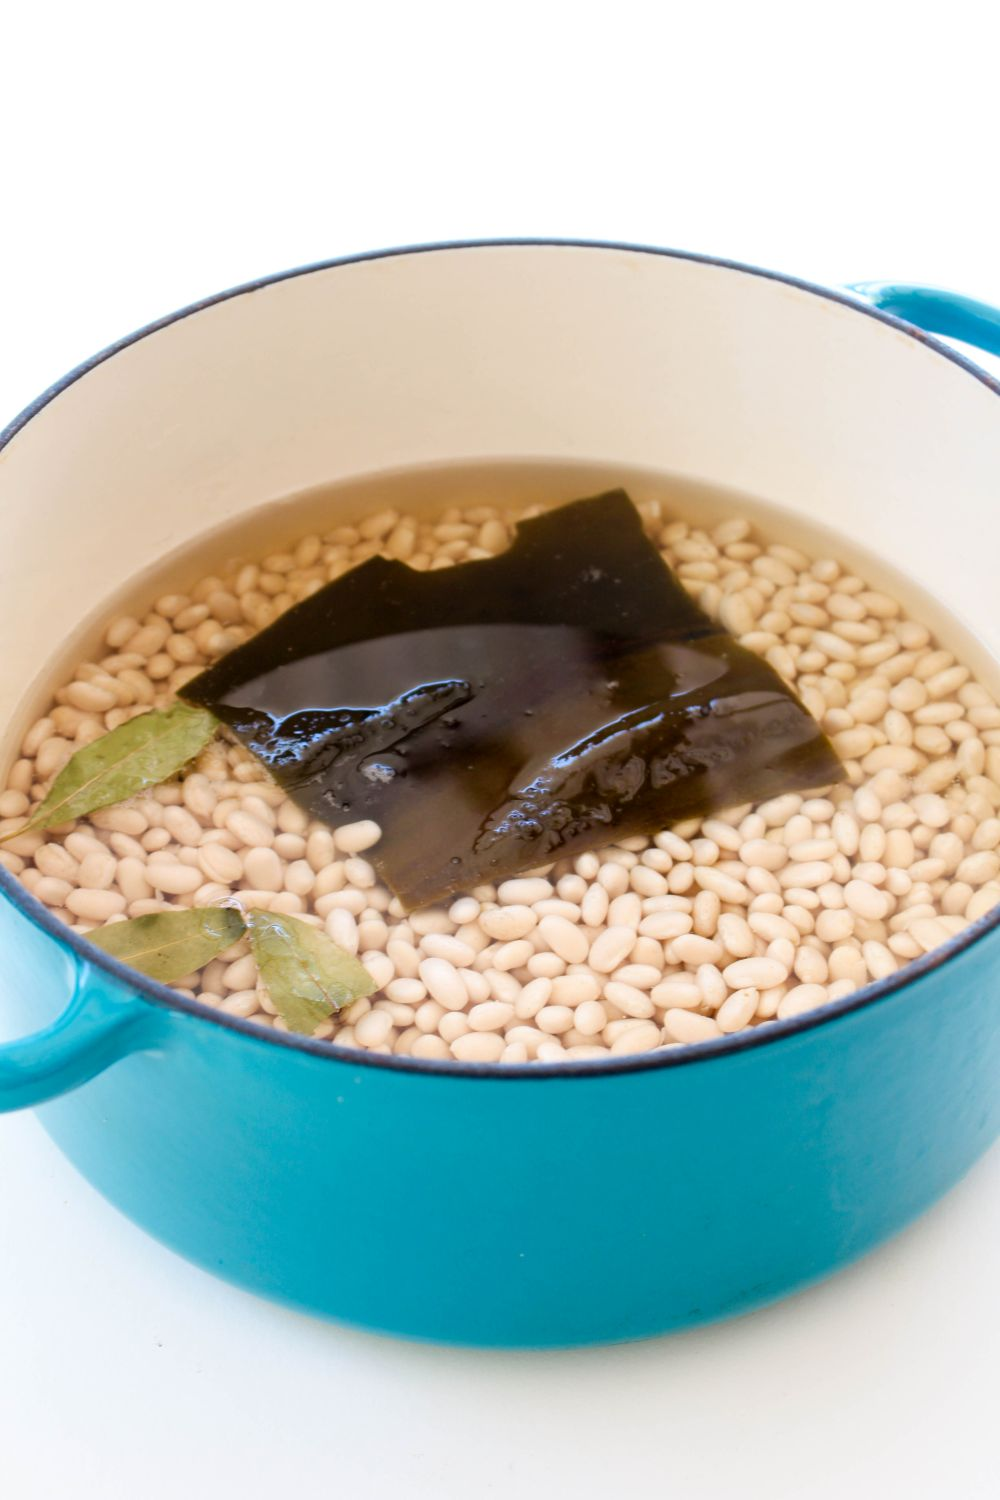 Baked beans large pot with water